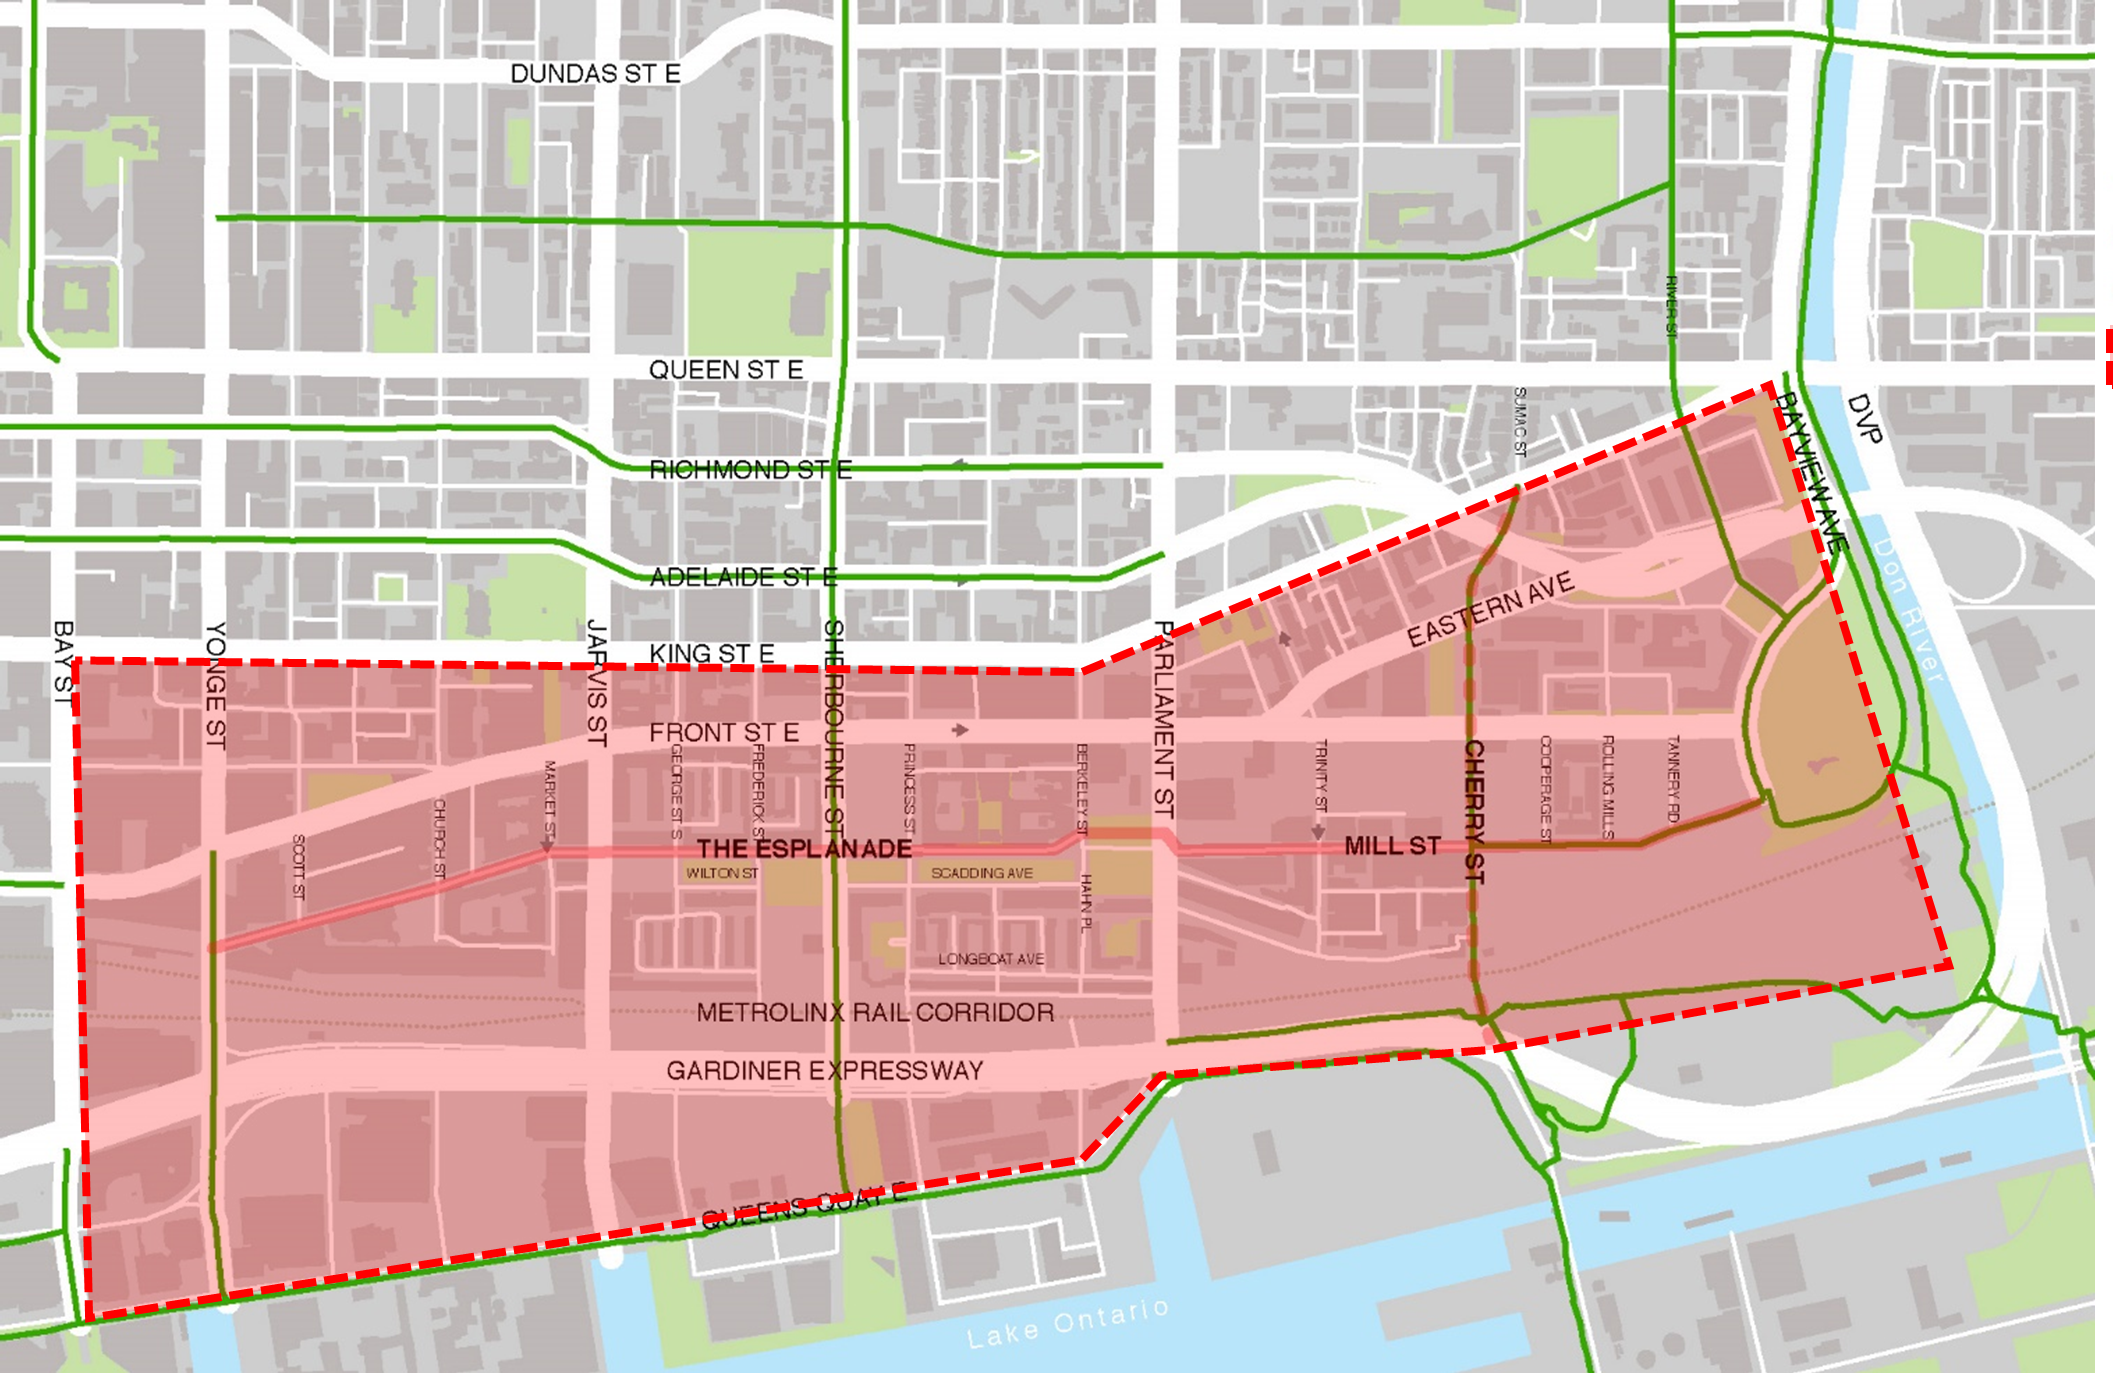 If you have trouble reading this map, please contact Alyssa.Cerbu@toronto.ca